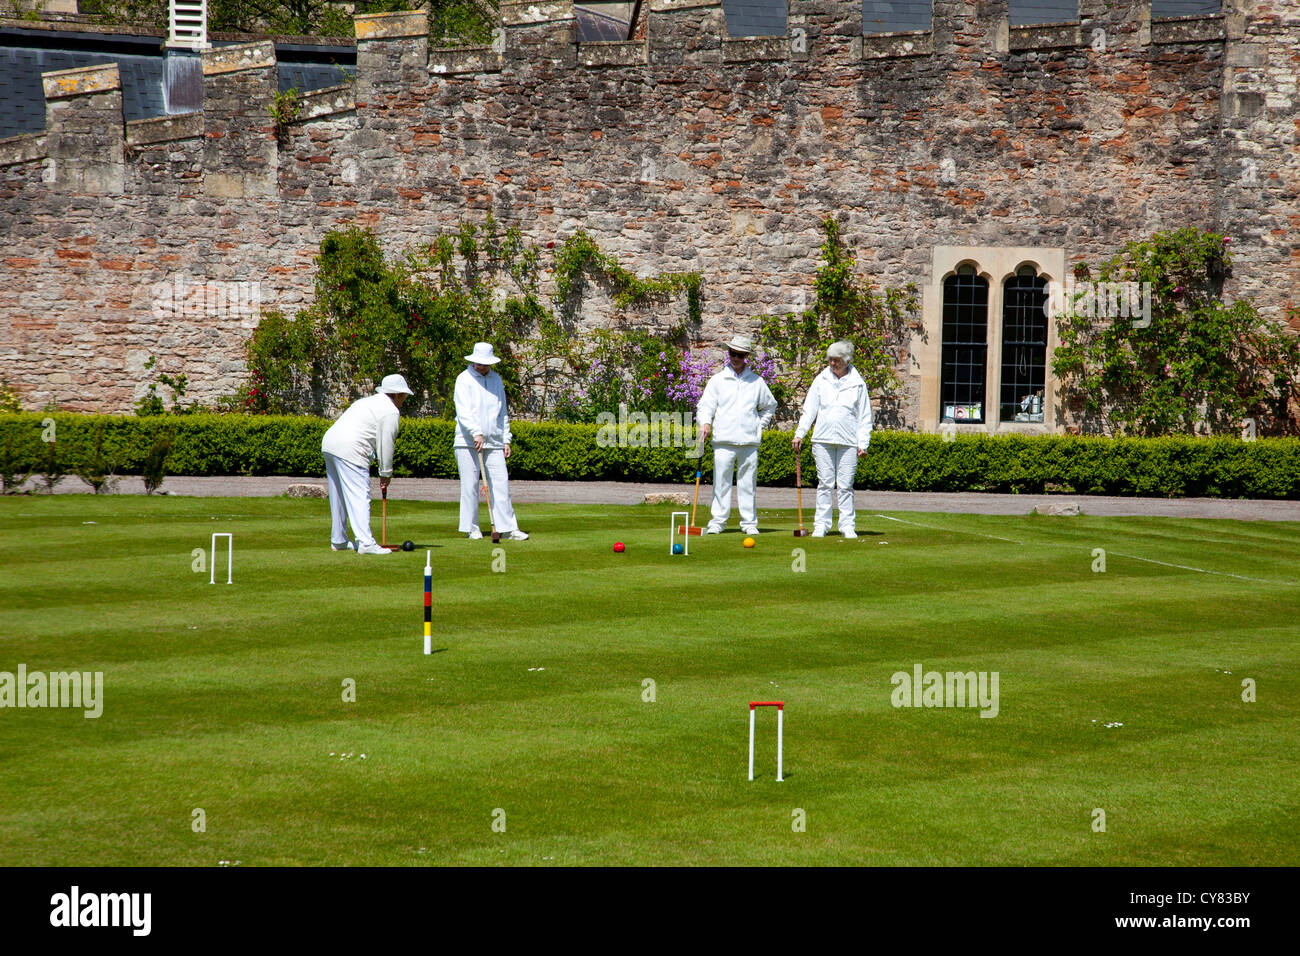 Croquet on the lawn inside the Bishop's Palace grounds at Wells, Somerset, England, UK - Stock Image